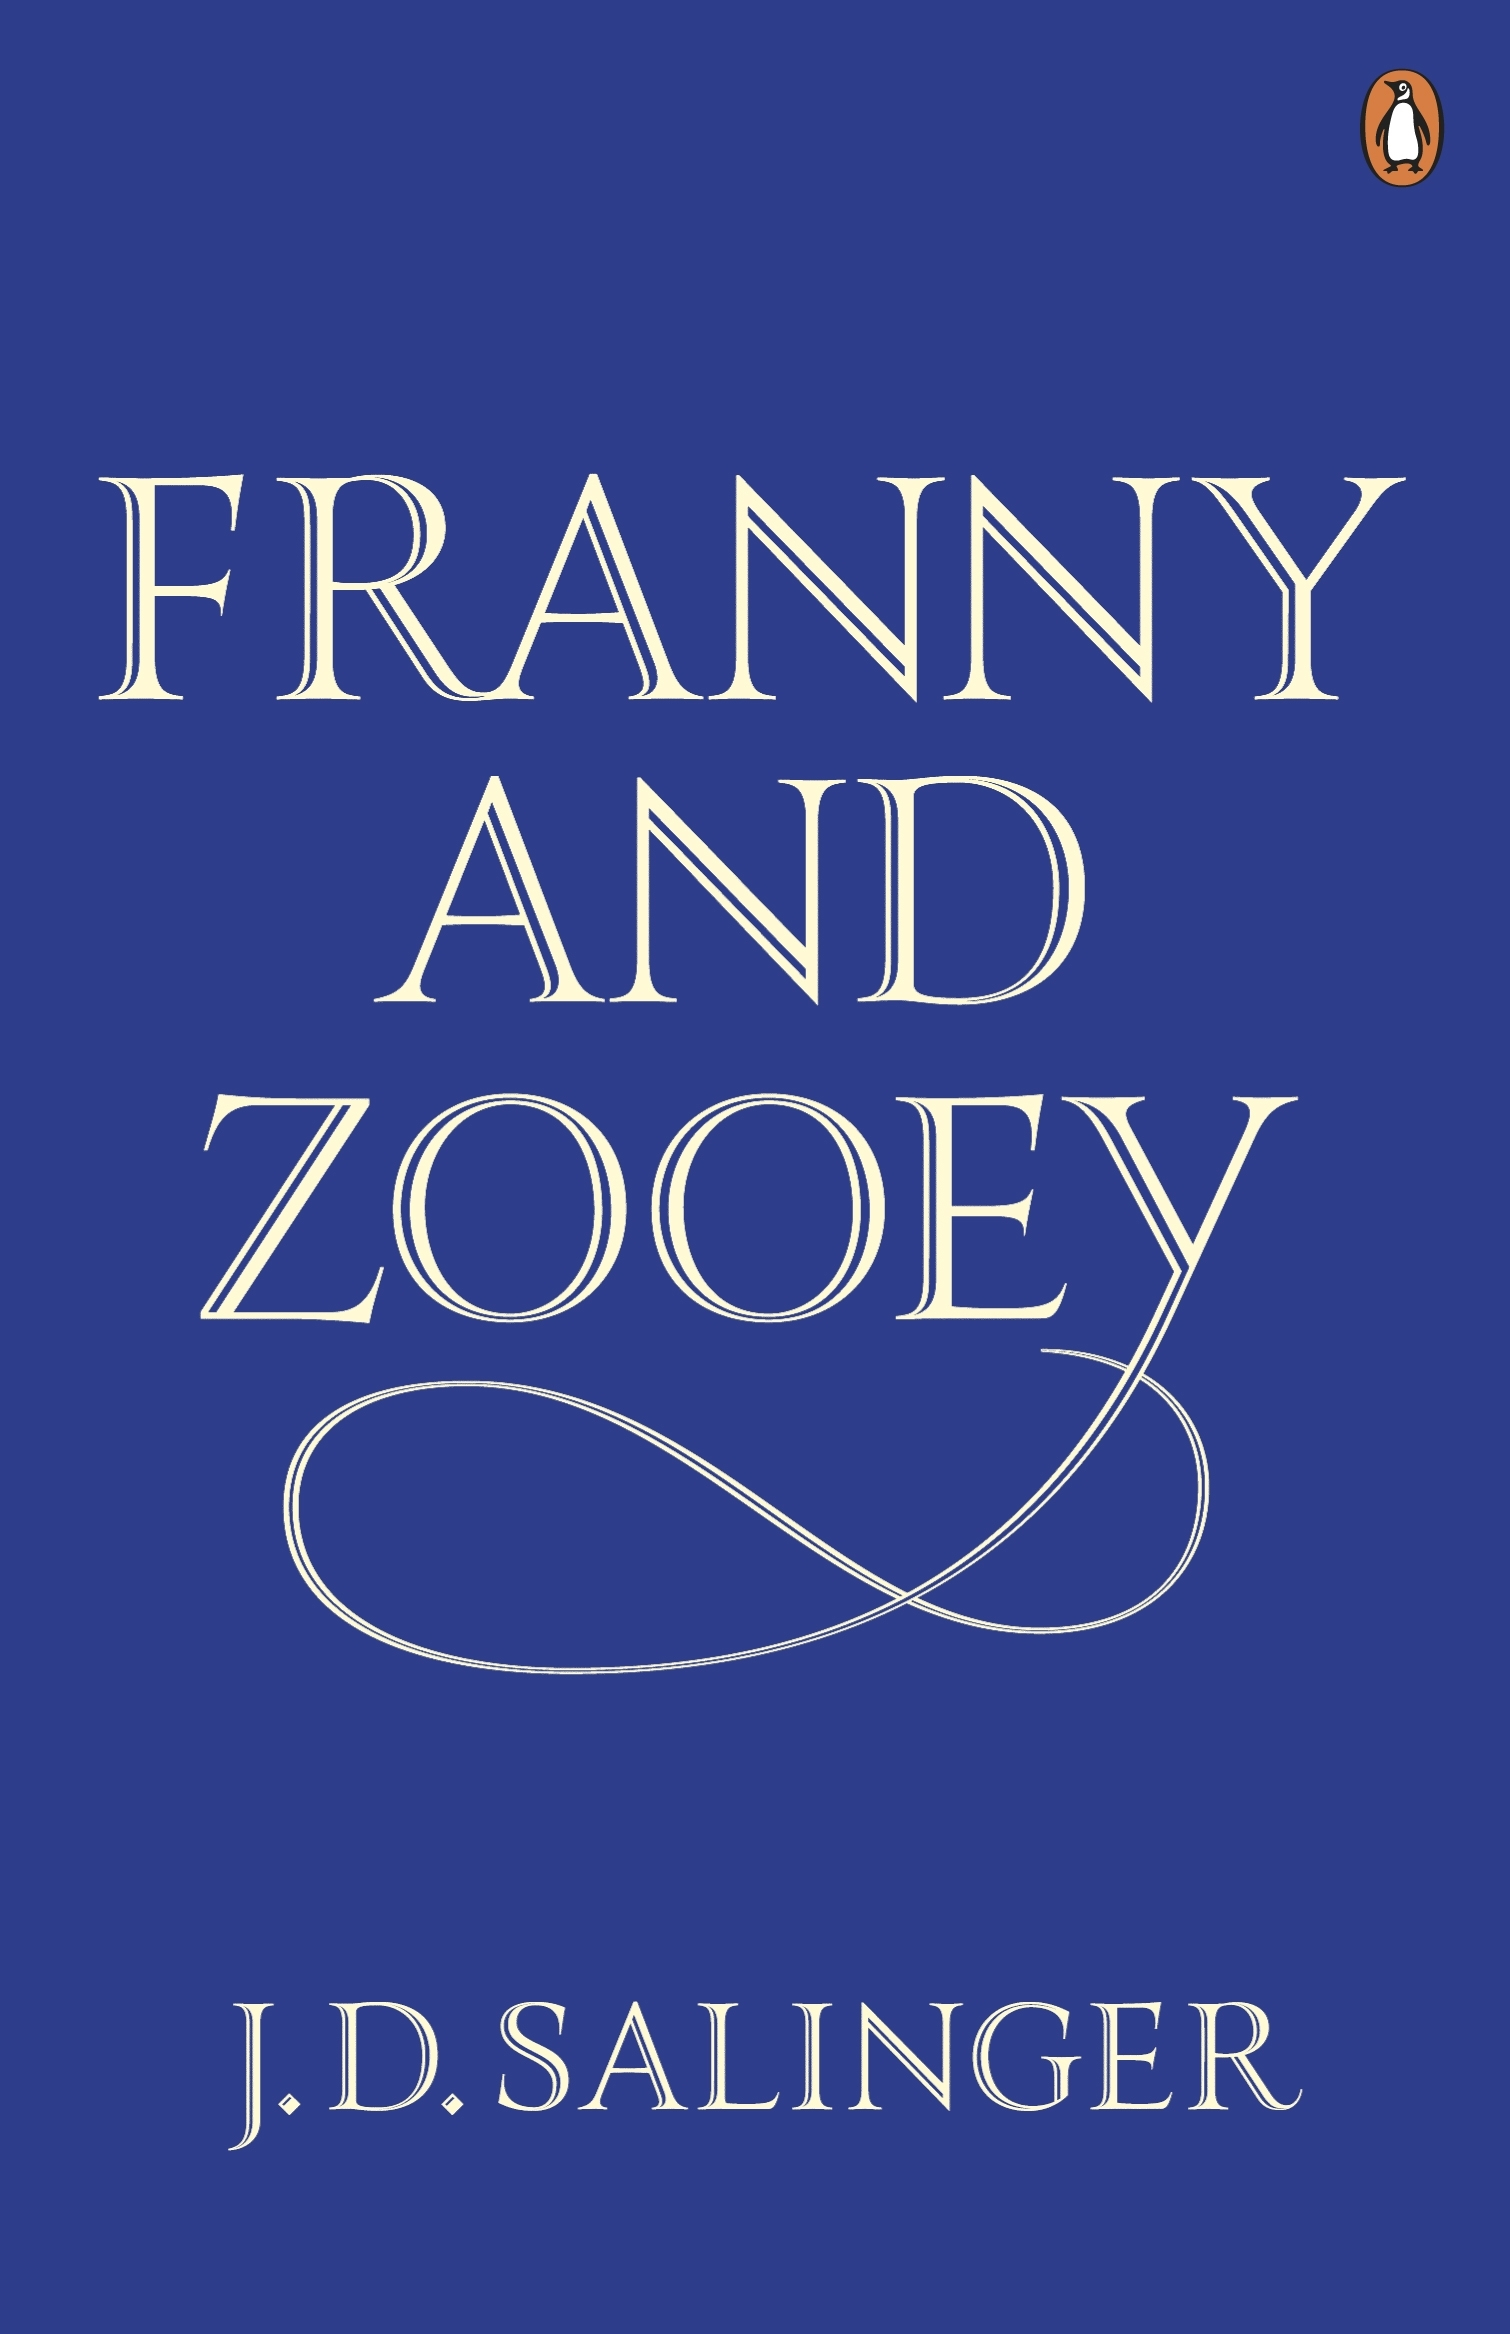 a literary analysis of franny and zooey and the catcher in the rye by j d salinger The parody of j d salinger: esmé and the fat lady expose  franny and  zooey and j d salinger  the catcher in the rye: a critical commentary.